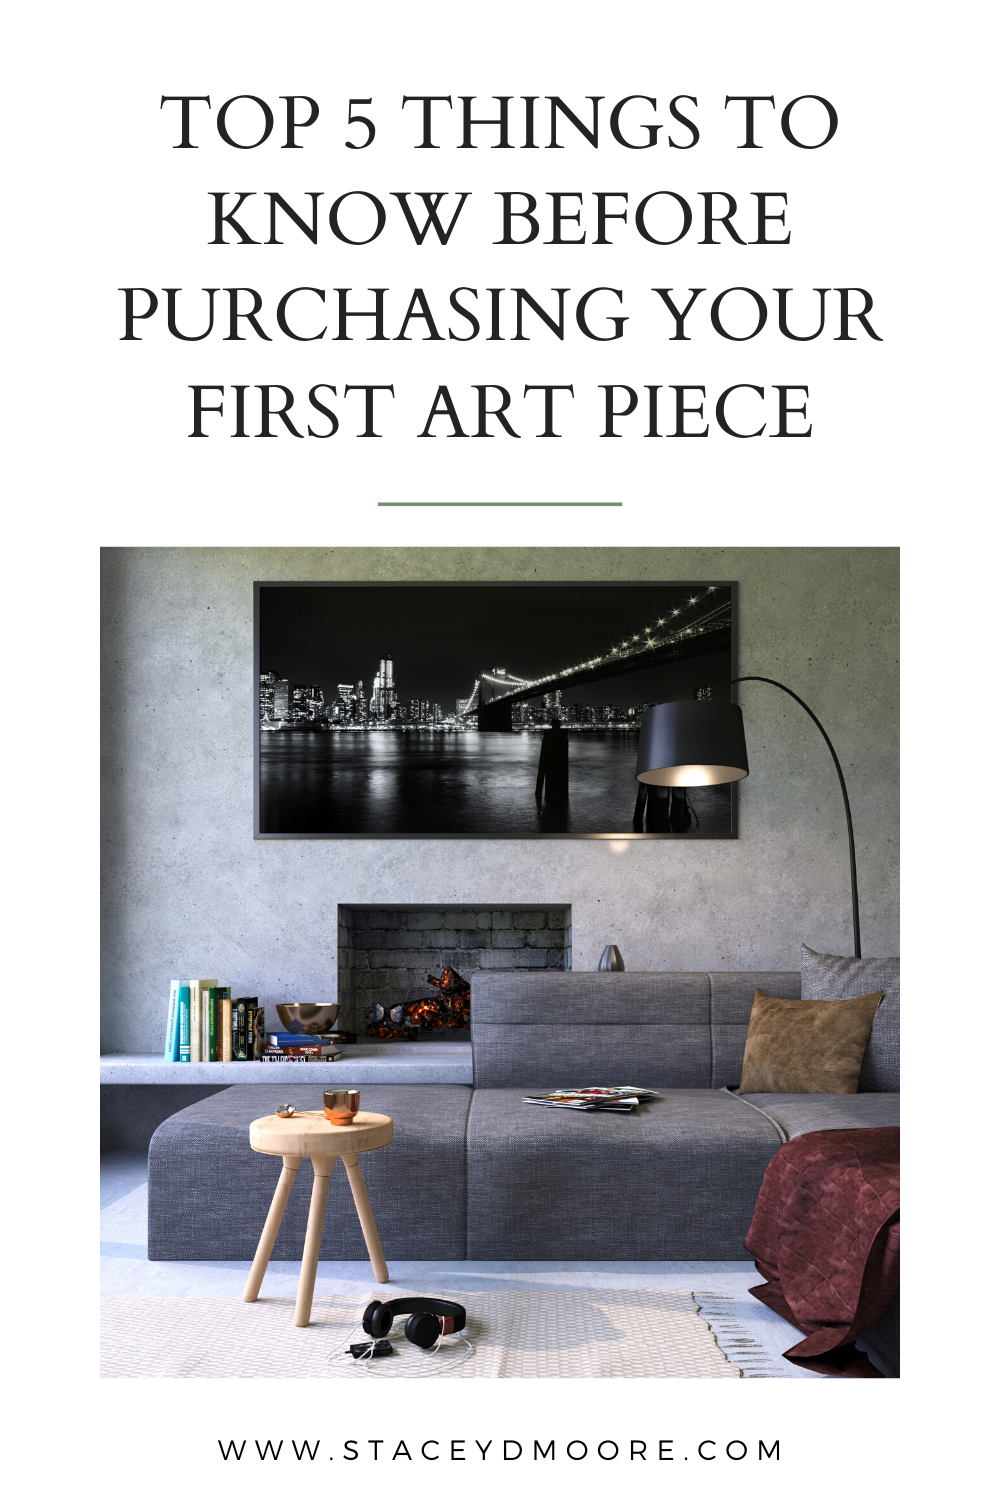 When it comes to purchasing your first art piece, you may experience some doubt due to the questions you have about the art. I have created a few tips for purchasing your first art piece. Here is the list of things you need to know....   #artlove #giftideas #artbuyingtips #staceydmoore @stacey_d_moore